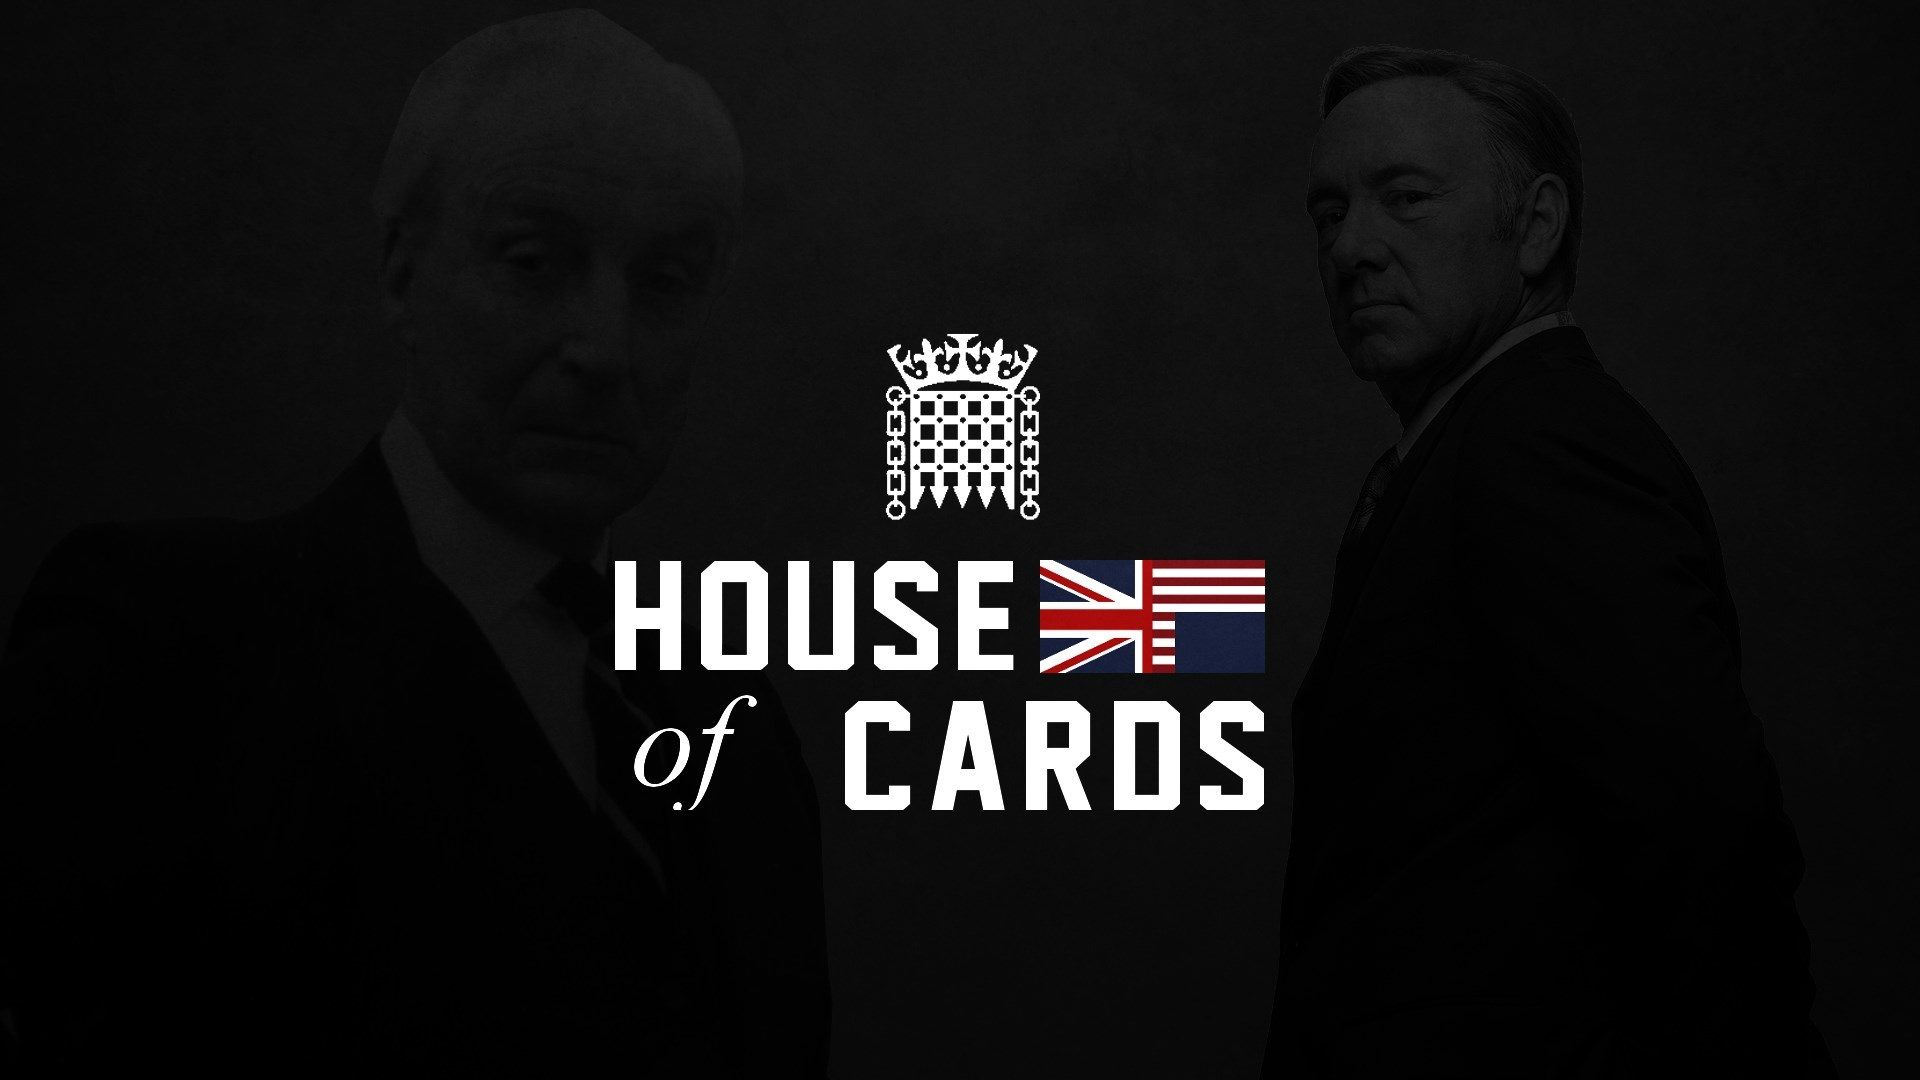 1920x1080 House Of Cards High Quality Images House Of Cards Cards High Quality Images